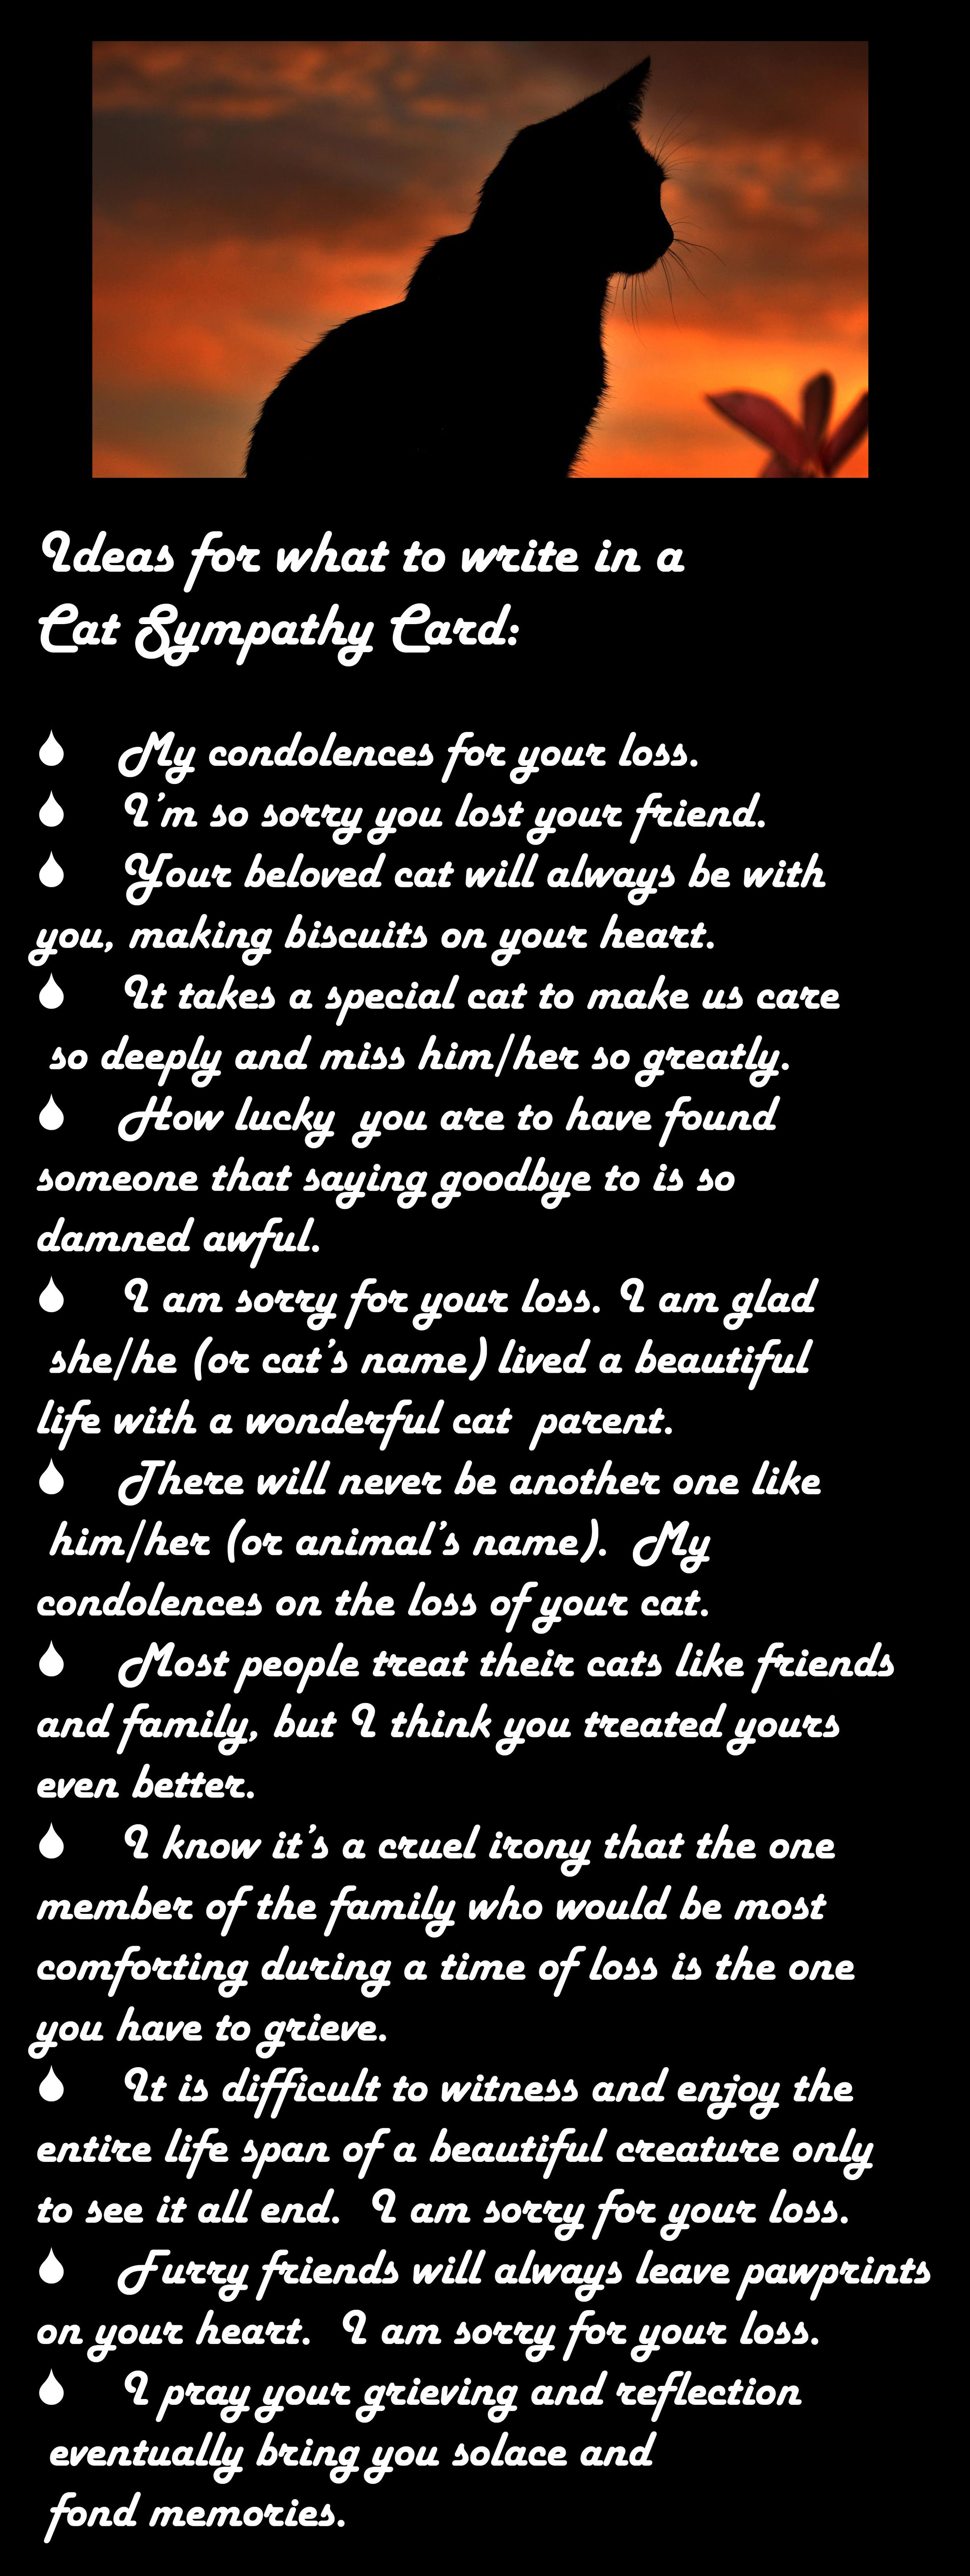 Ideas for what to write on a cat sympathy card. | Cats ...